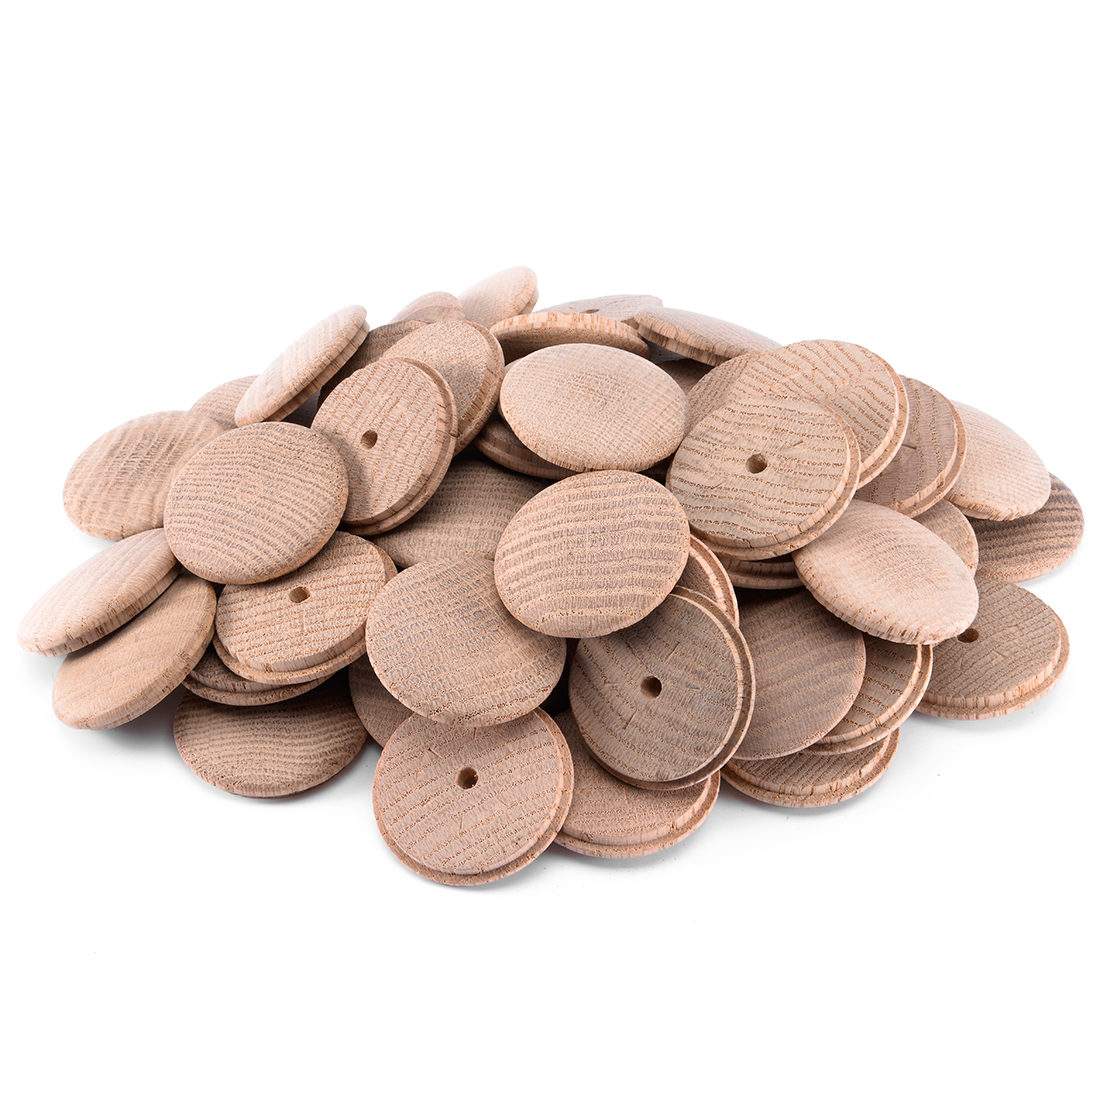 1-4/5-Inch Oak Button Top Wood Plugs 60 Pcs